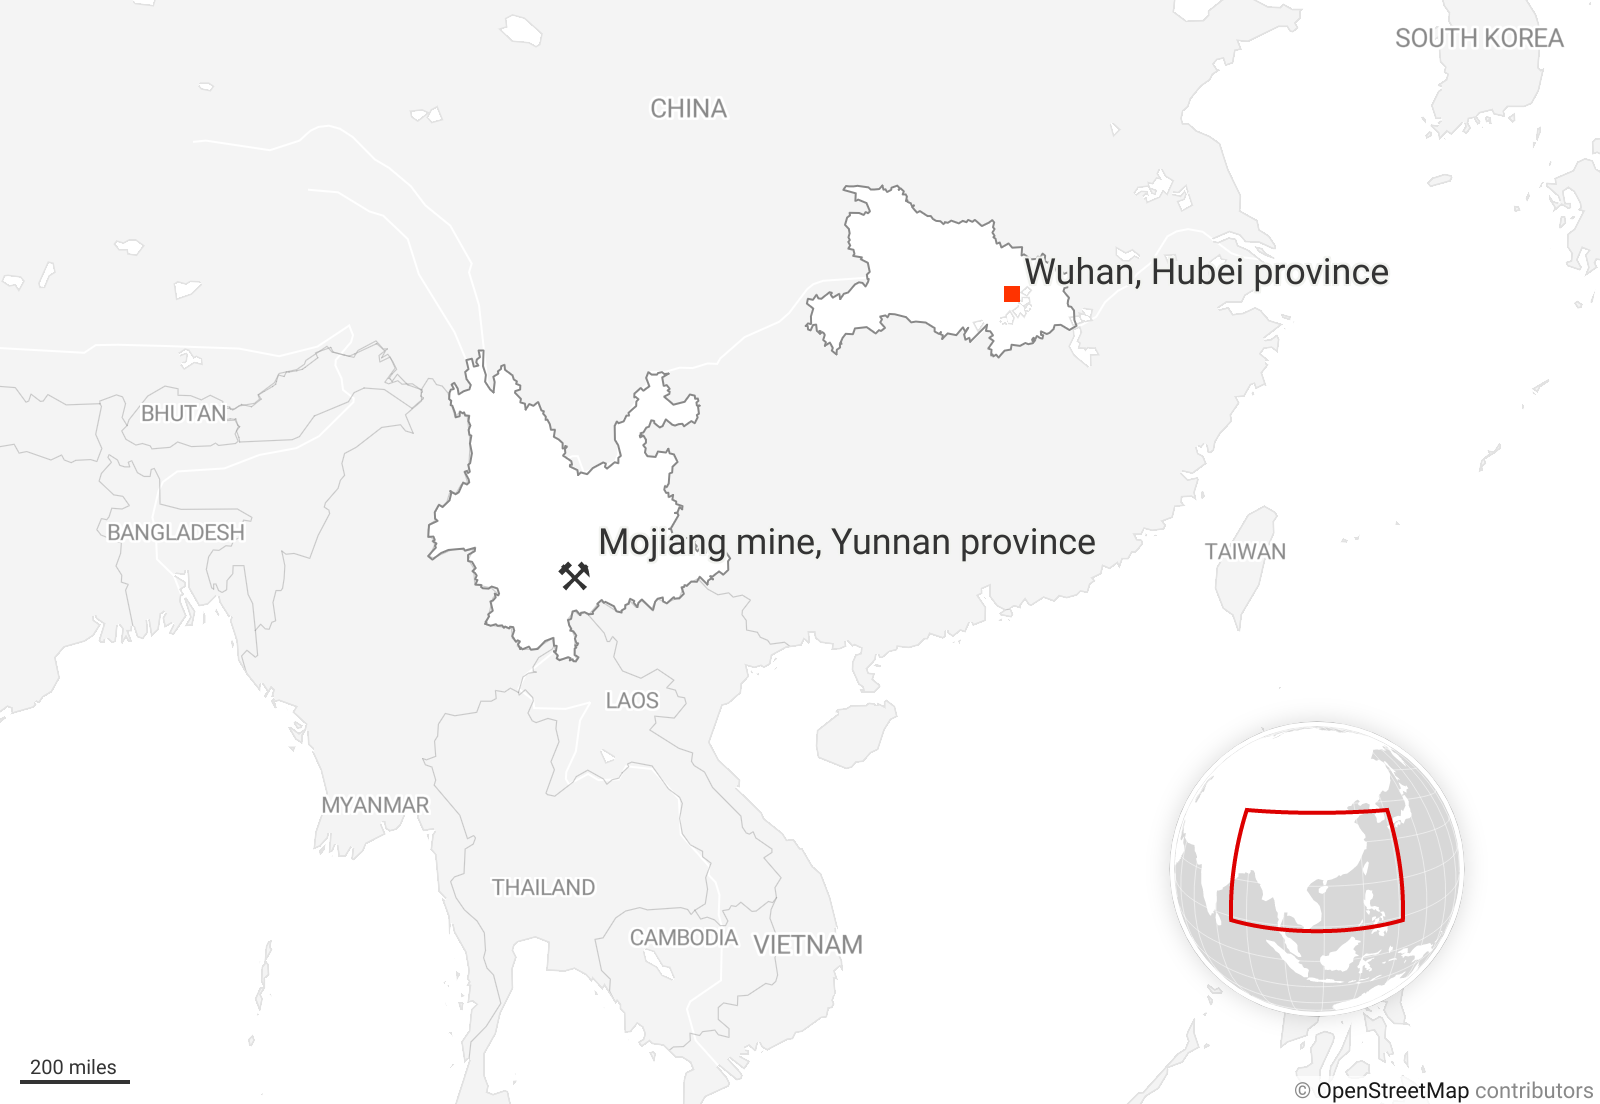 Wuhan in Hubei province and the Mojiang Mine in Yunnan province are highlighted on a map